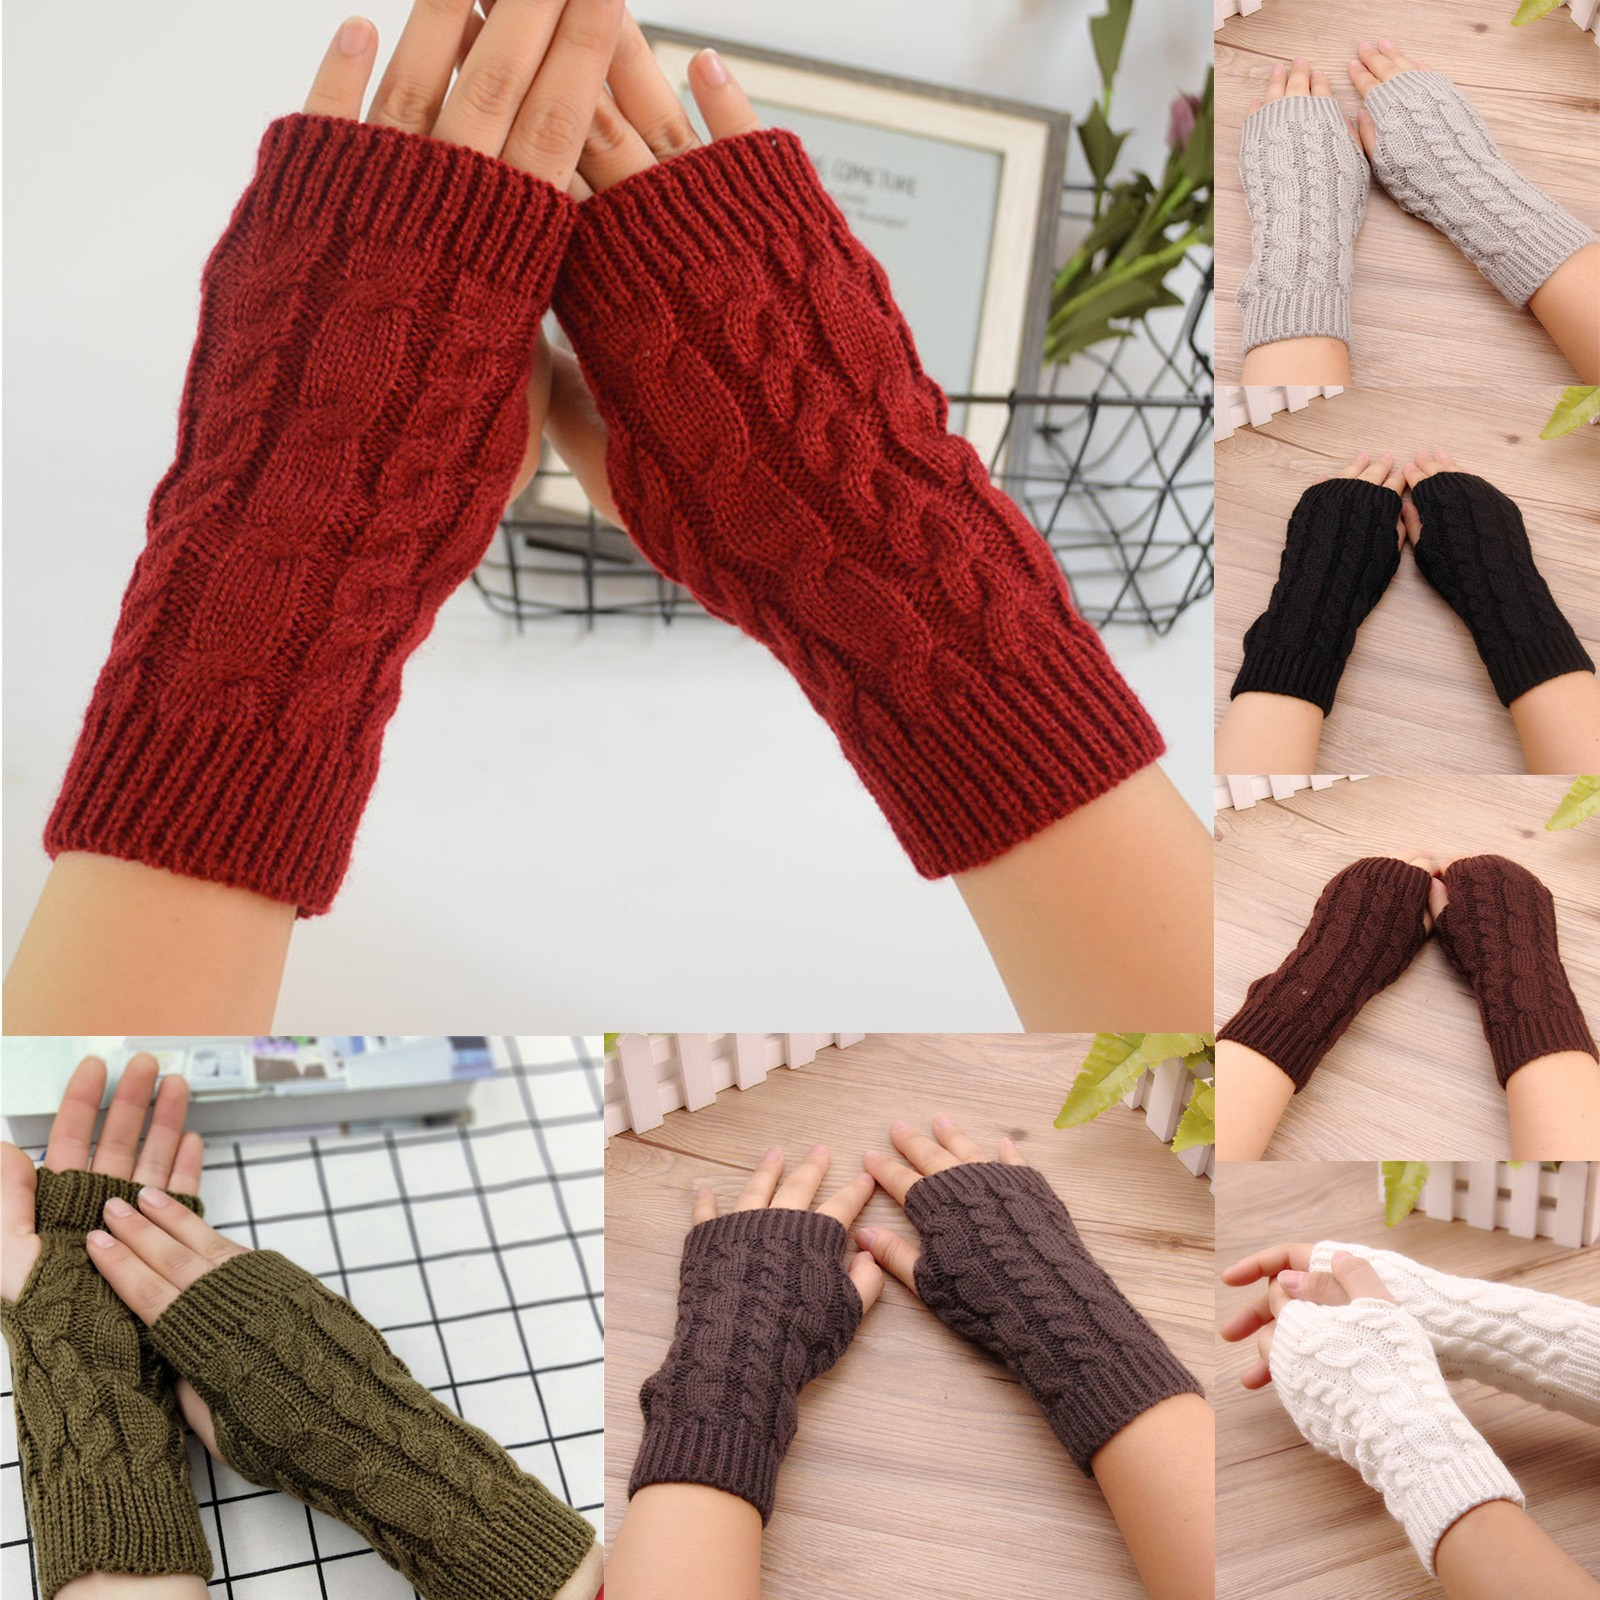 Gloves перчатки Women Fashion Winter Soft Knitted Stretch Keep Warm Riding Gloves With Mobile Phone перчатки женские Free Ship